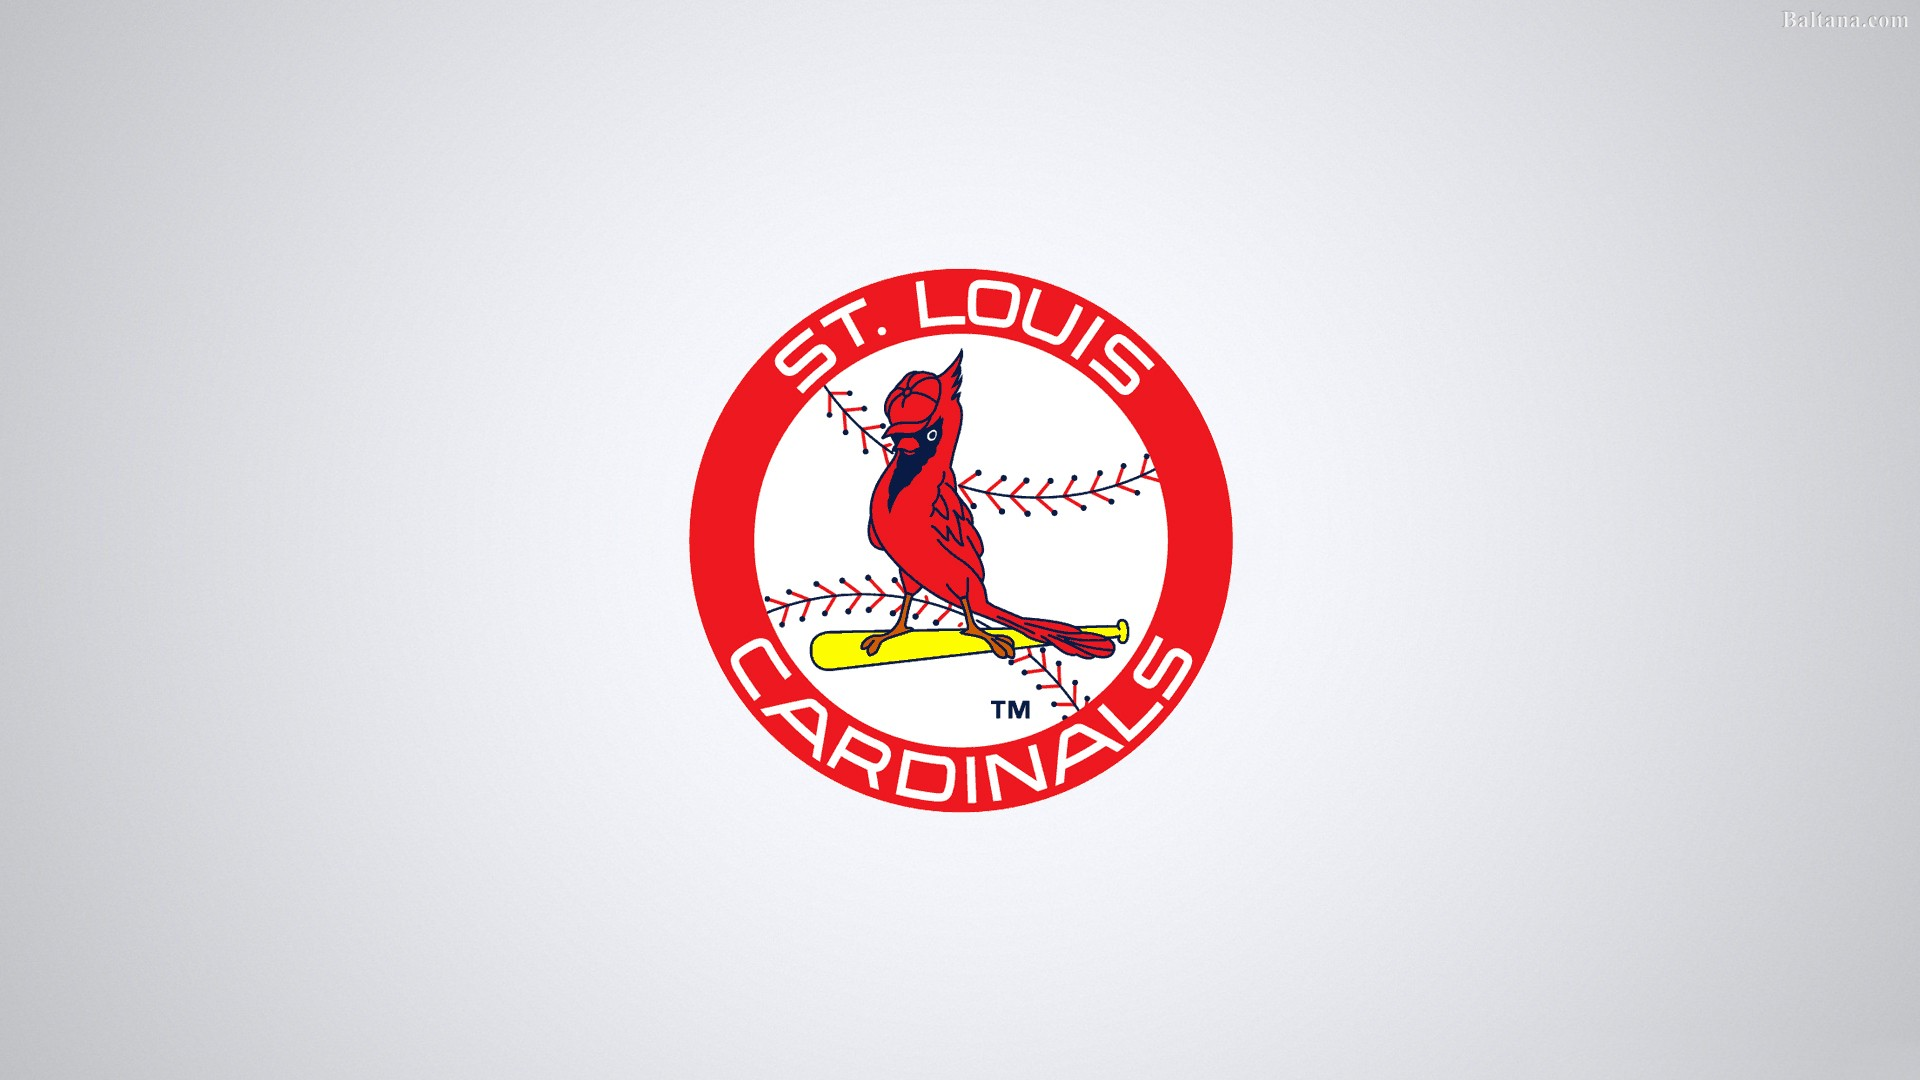 62 St Louis Cardinals Wallpaper Hd